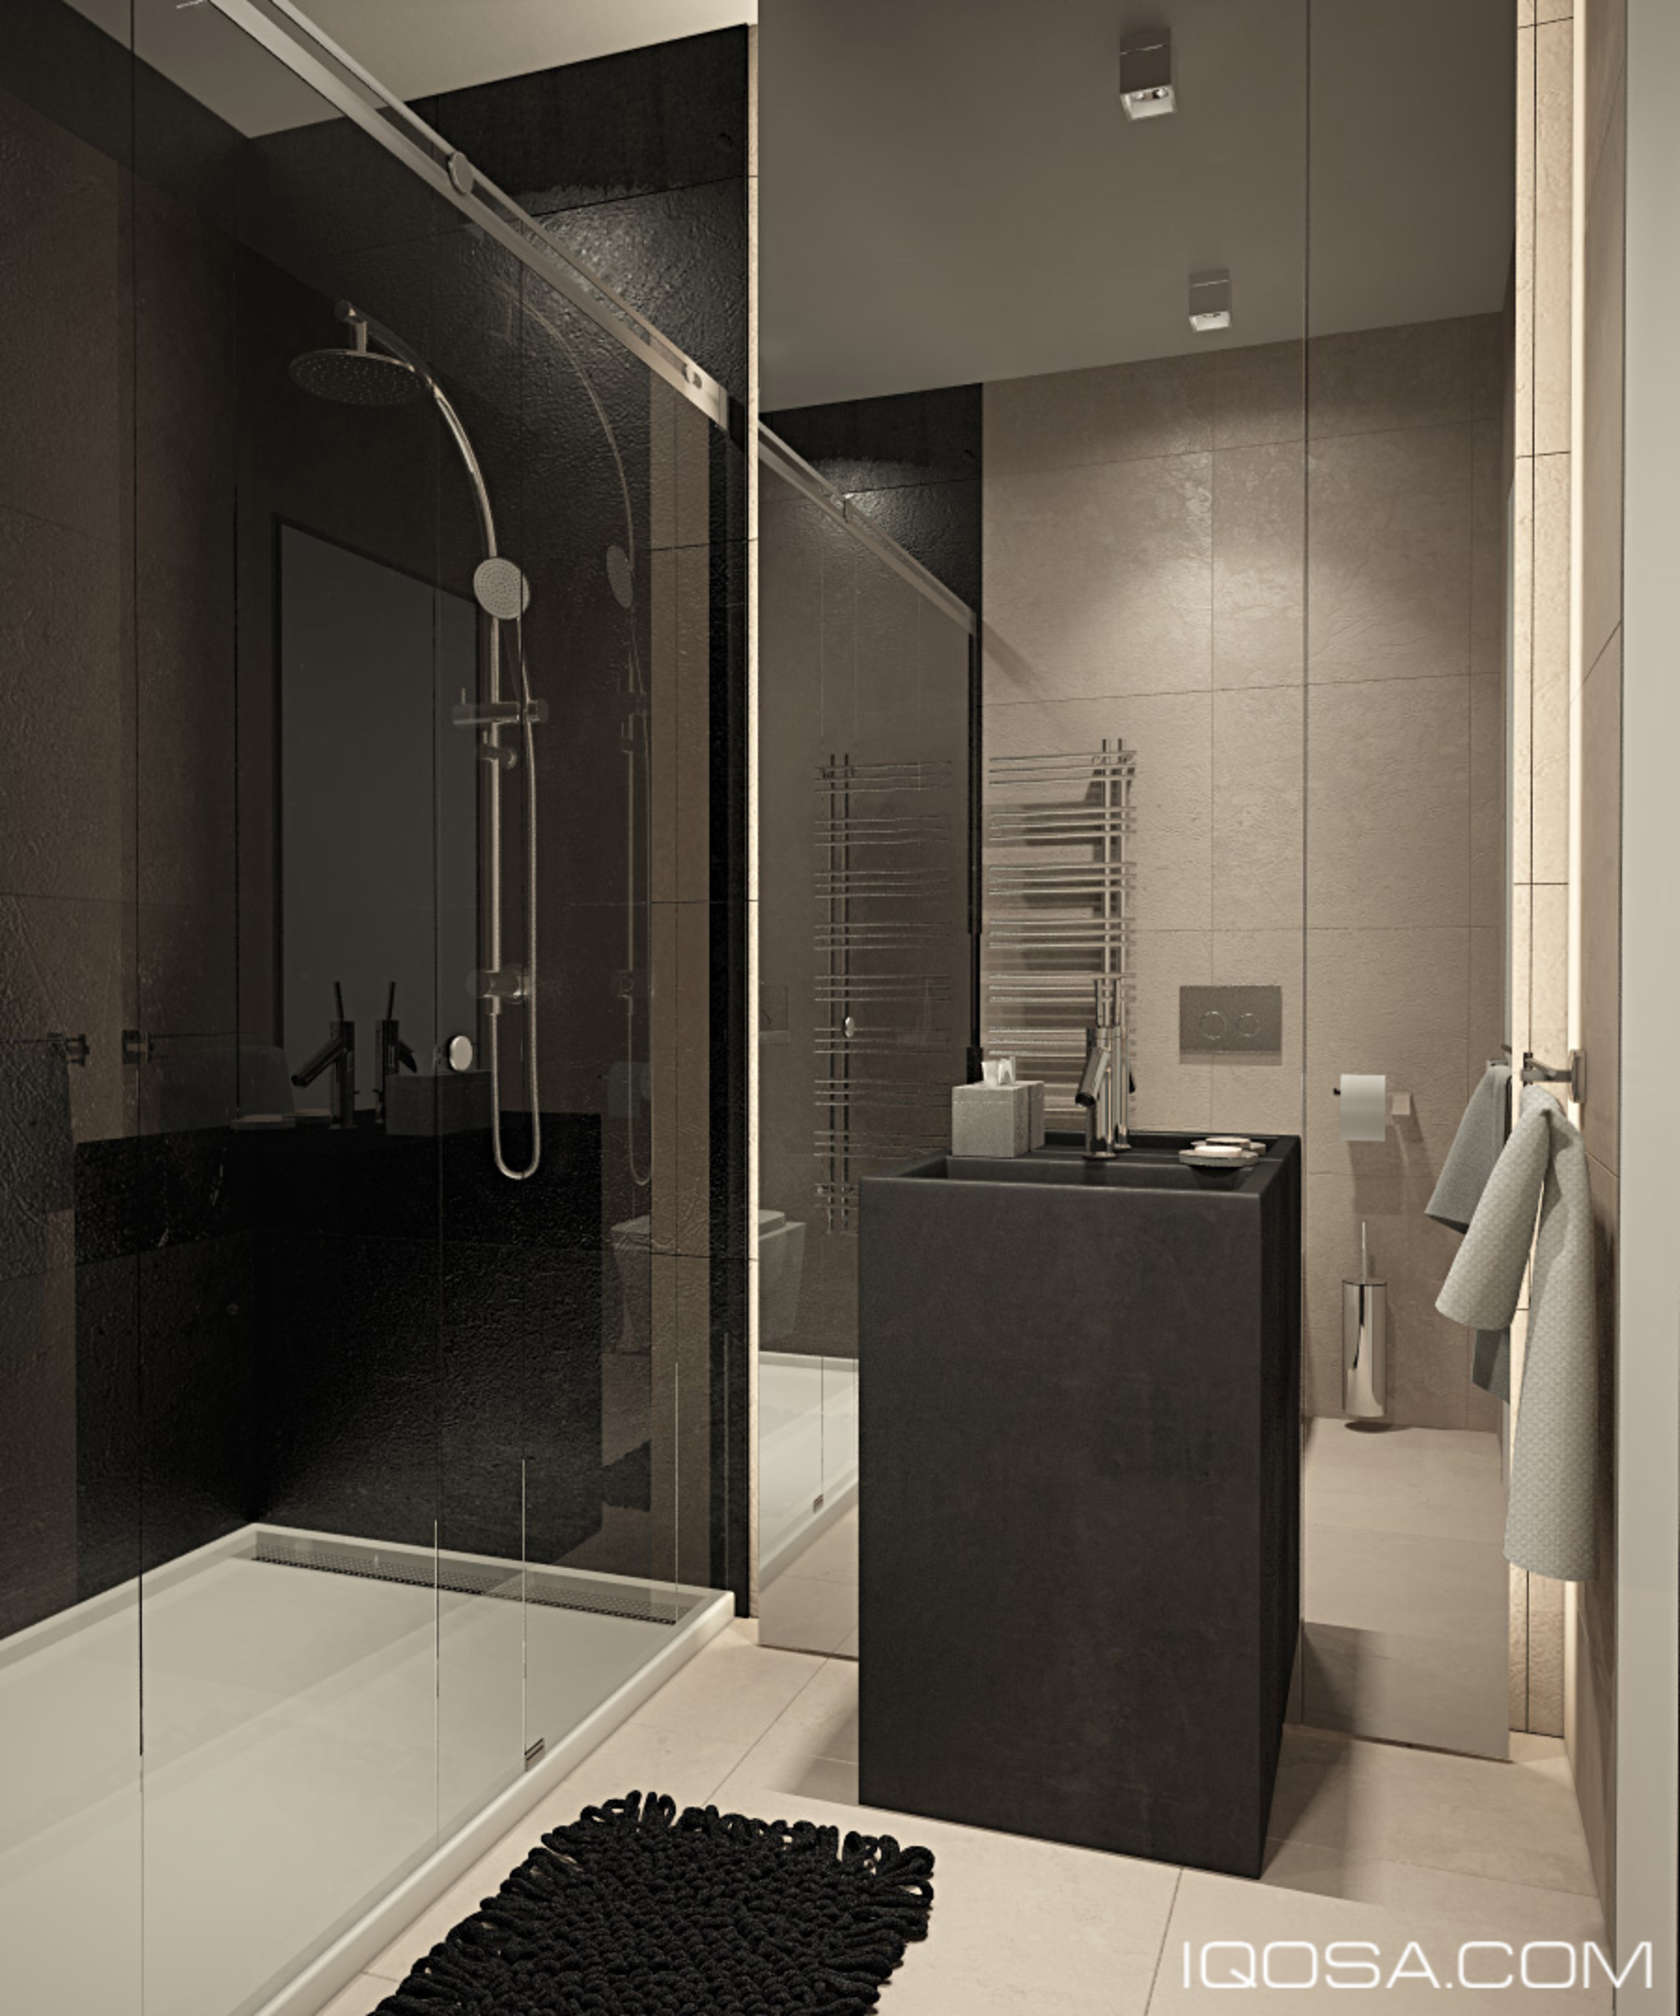 Clever Mirrored Bathroom Wall - An approachable take on luxury apartment design